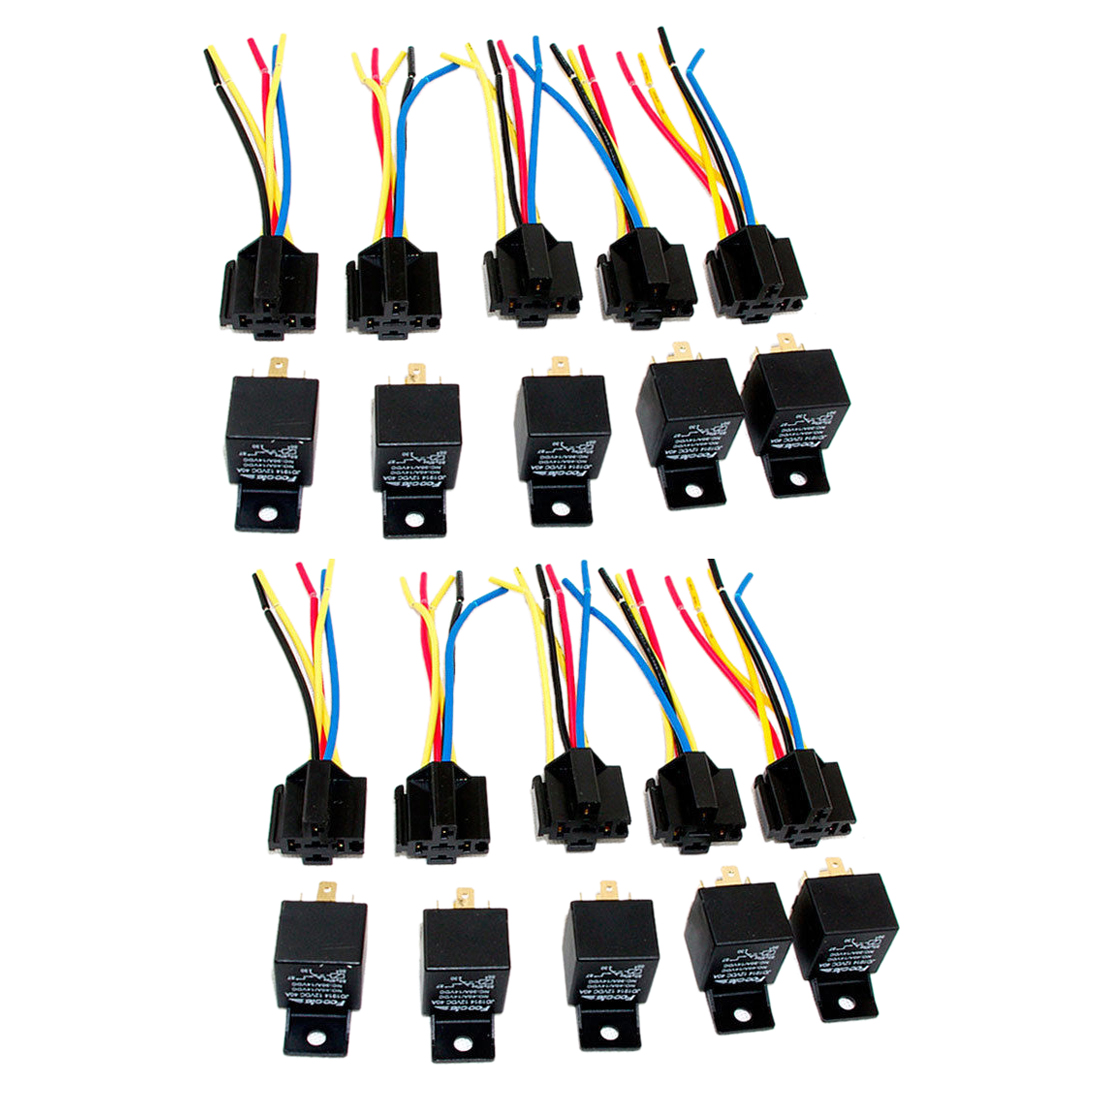 Lot10 New 12 Volt 40 Amp SPDT Automotive Relay with Wires & Harness Socket 2015 new arrival 12v 12volt 40a auto automotive relay socket 40 amp relay